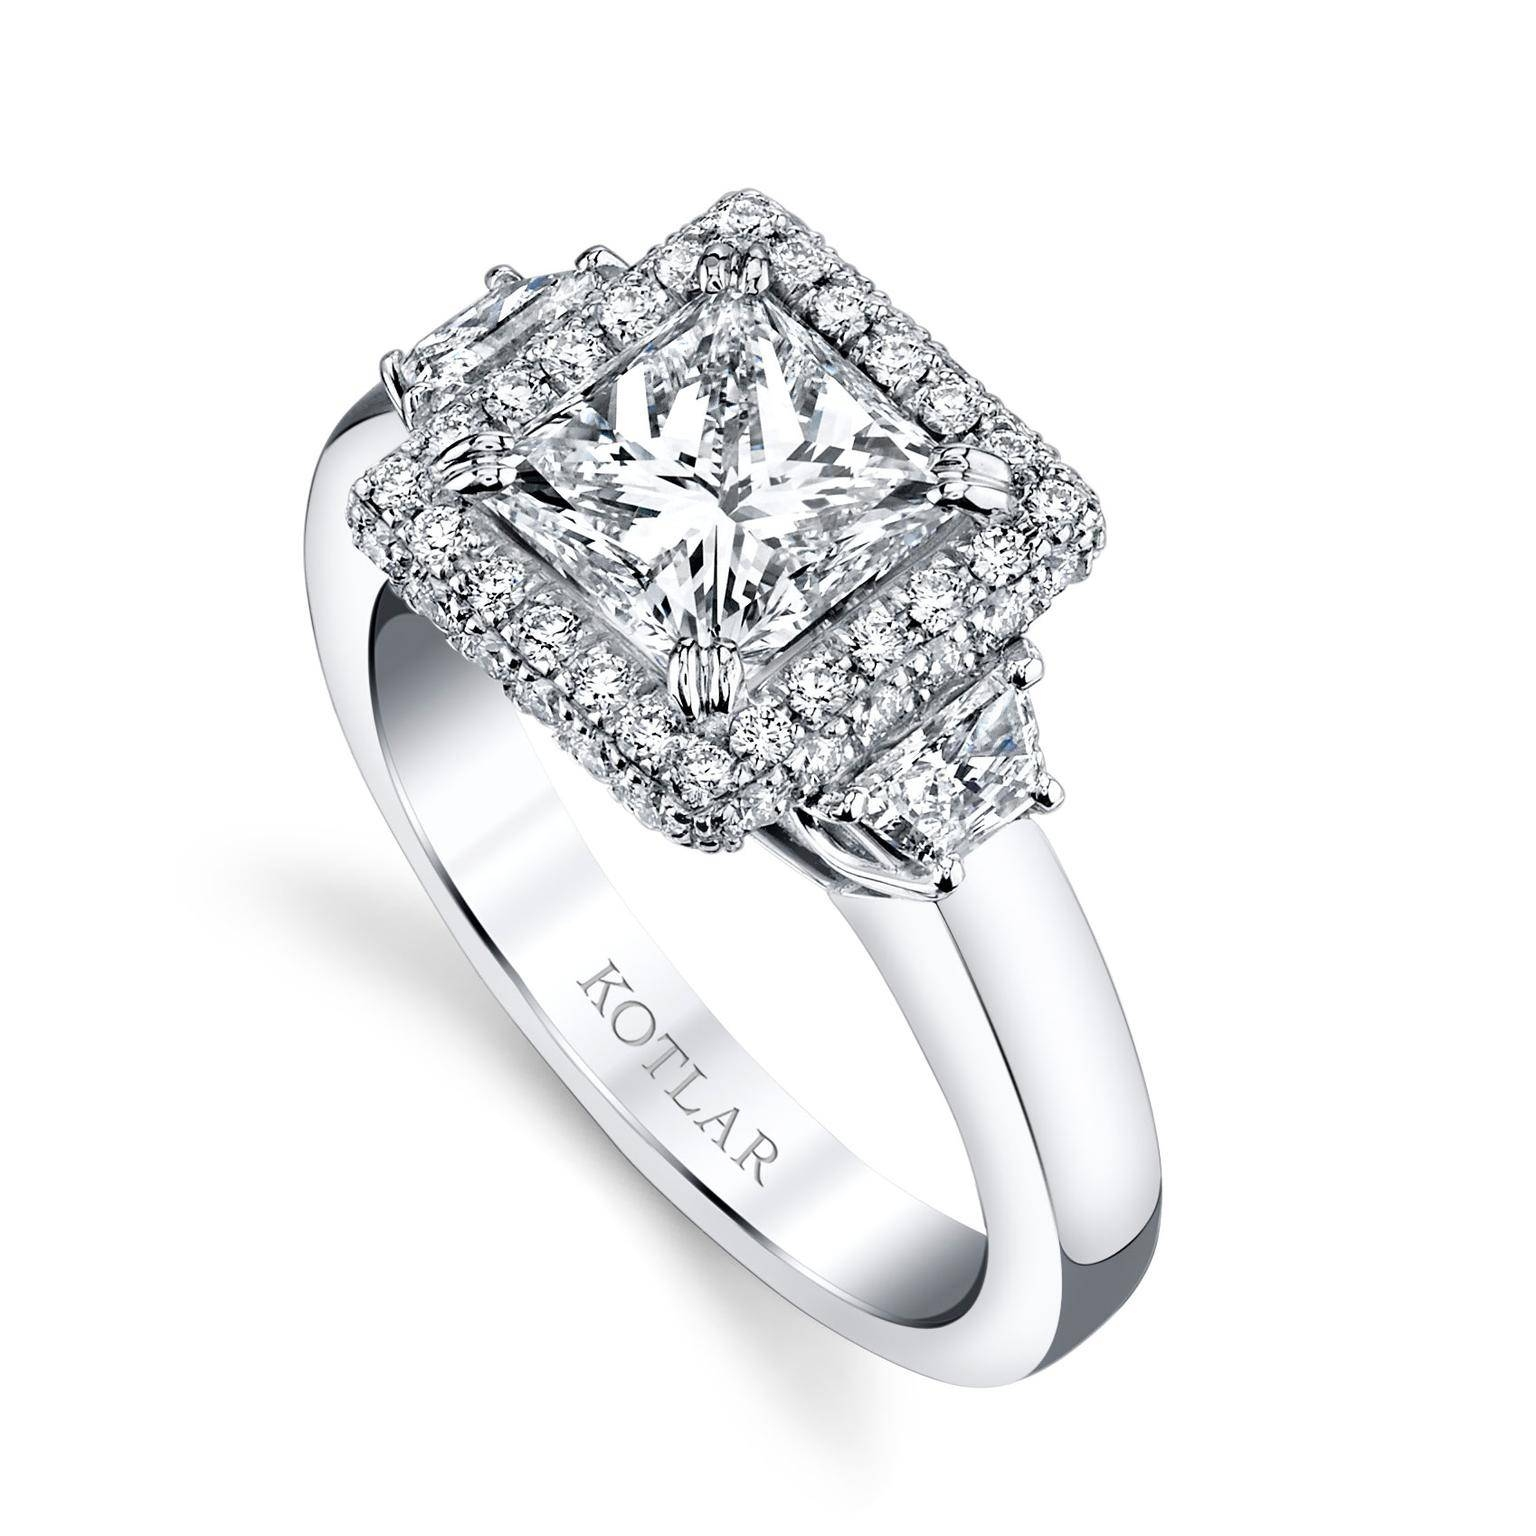 The Romantic Appeal Of Princess Cut Engagement Rings | The Regarding Princess Shaped Engagement Rings (View 6 of 15)